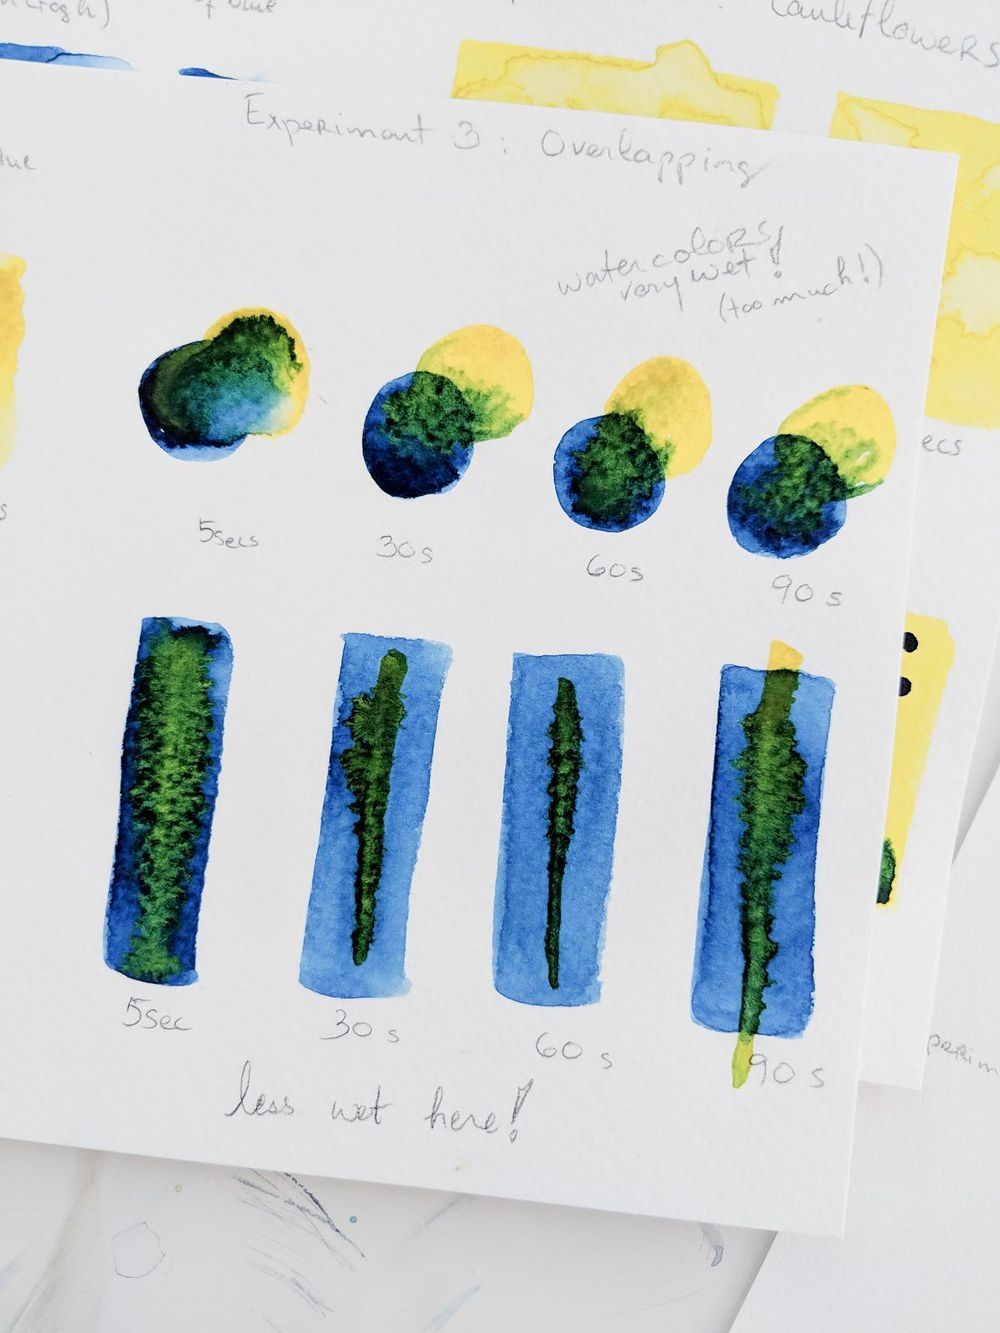 Experiments in watercolors with Ohn Mar Win - image 4 - student project